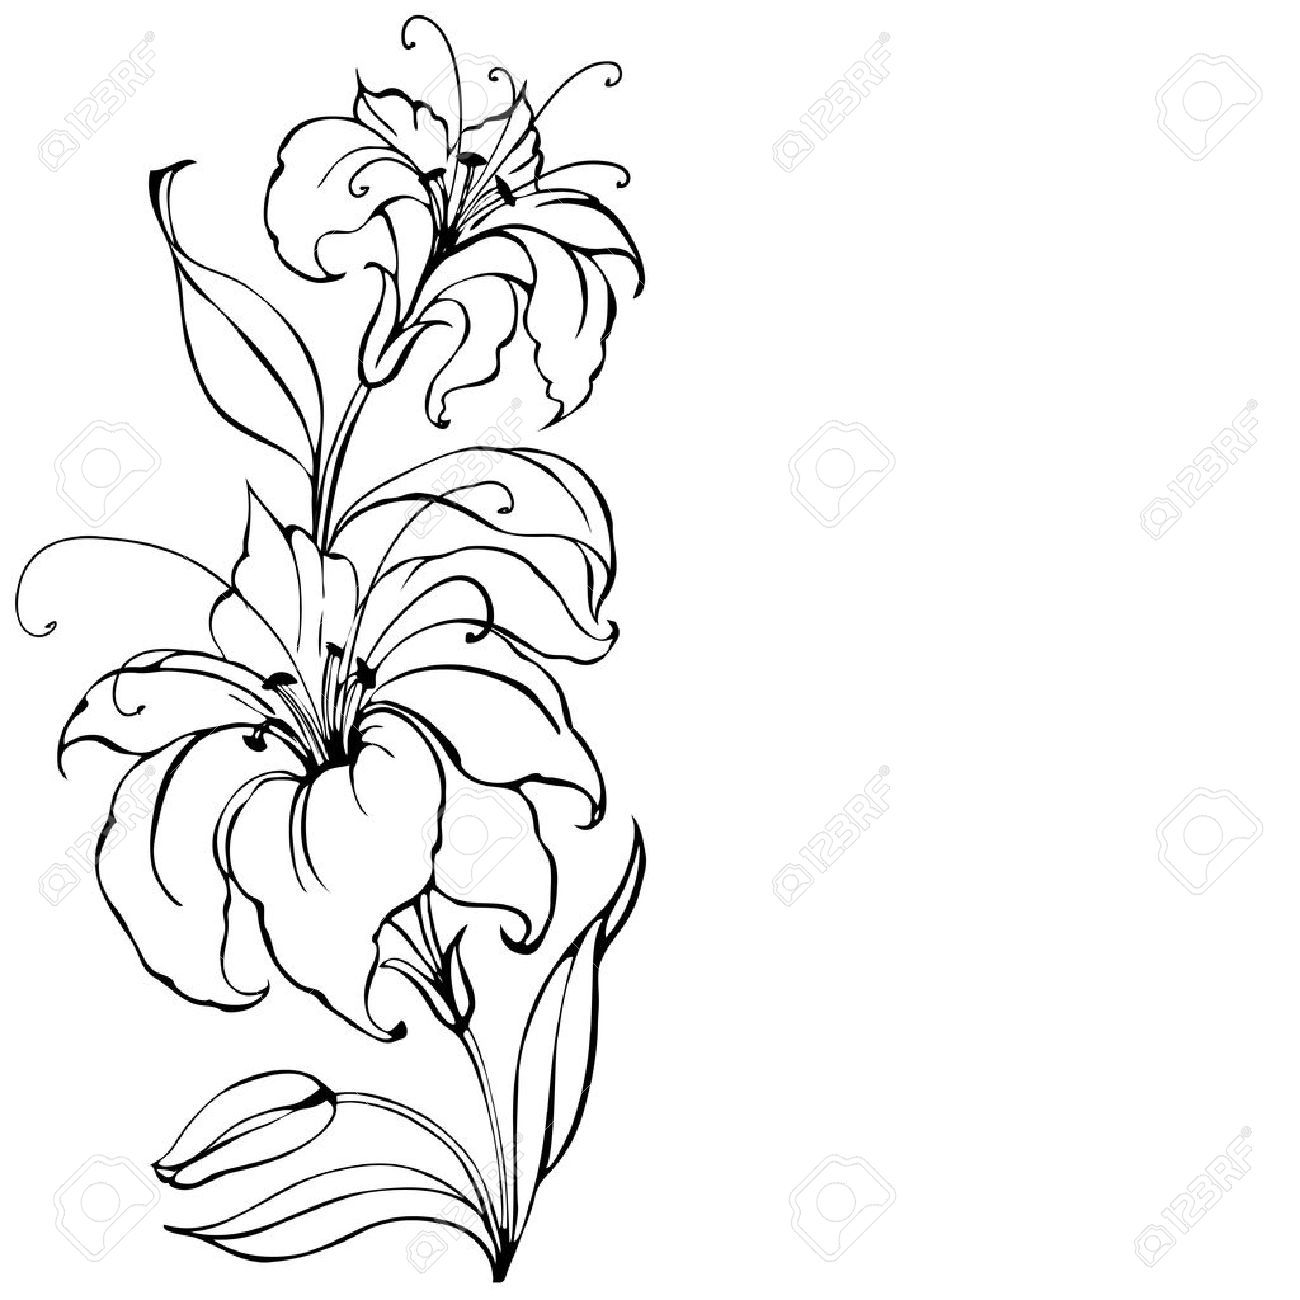 Related image Flower art drawing, Flower drawing, Lily